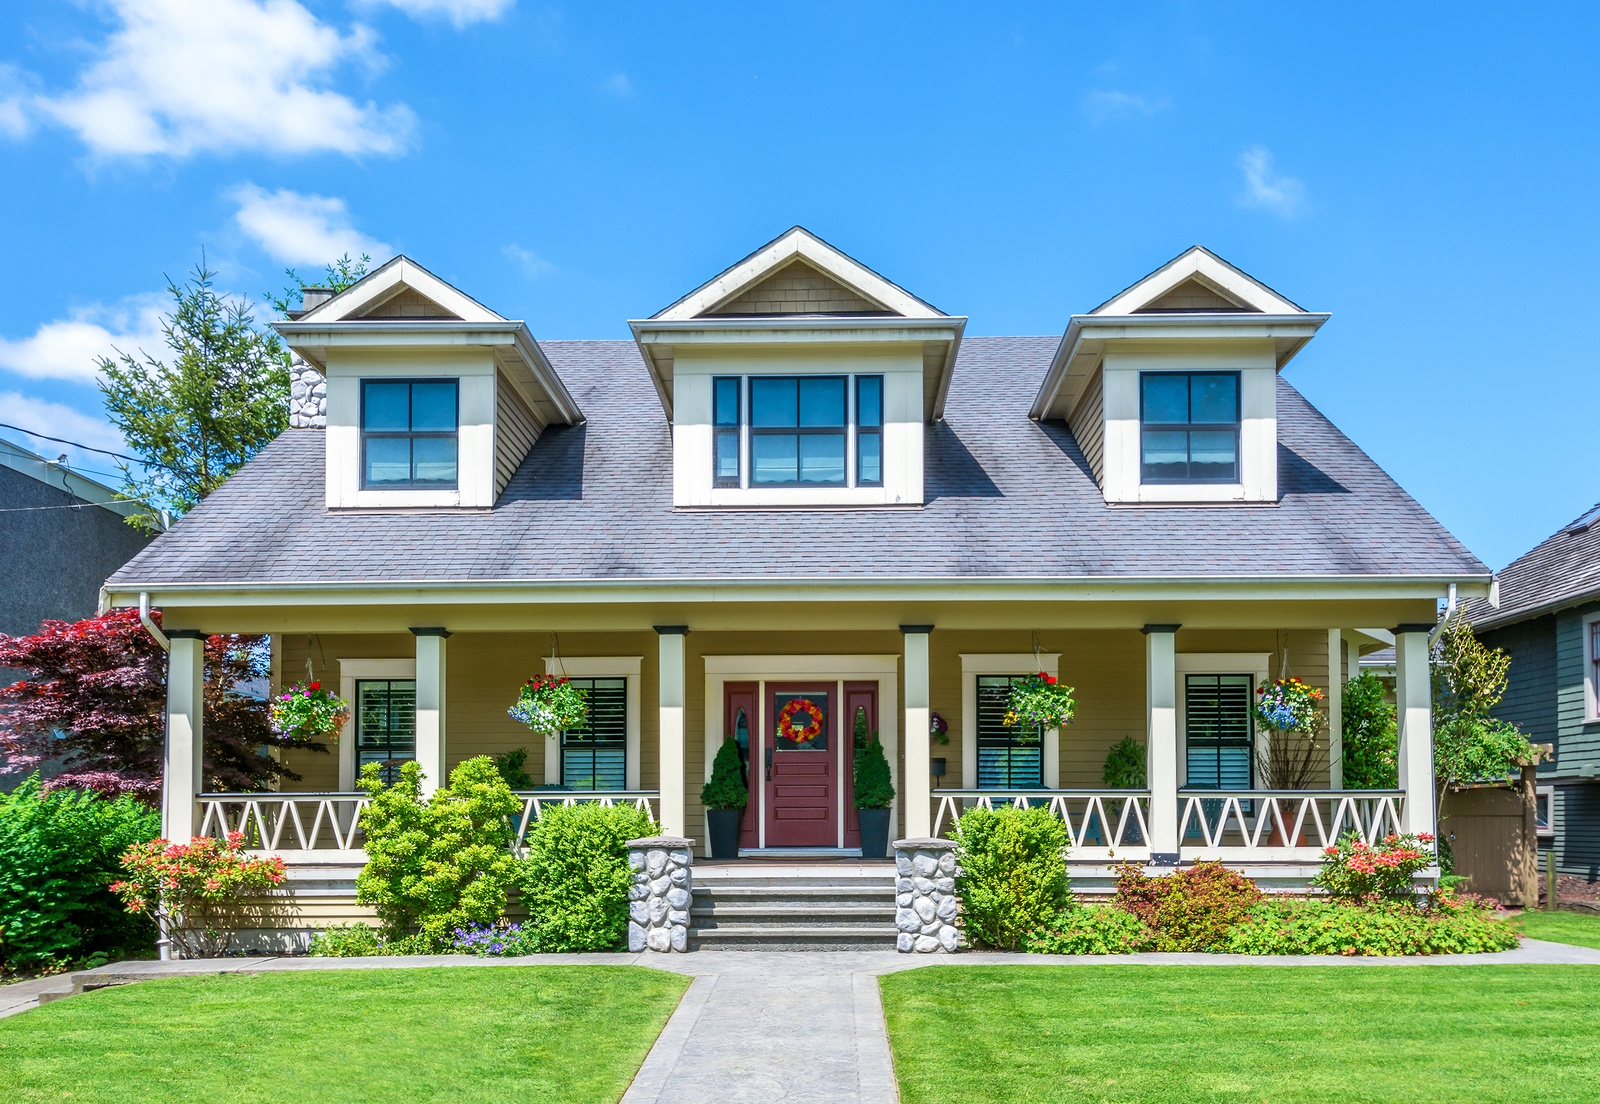 bigstock-Luxury-house-on-a-sunny-day--84075530